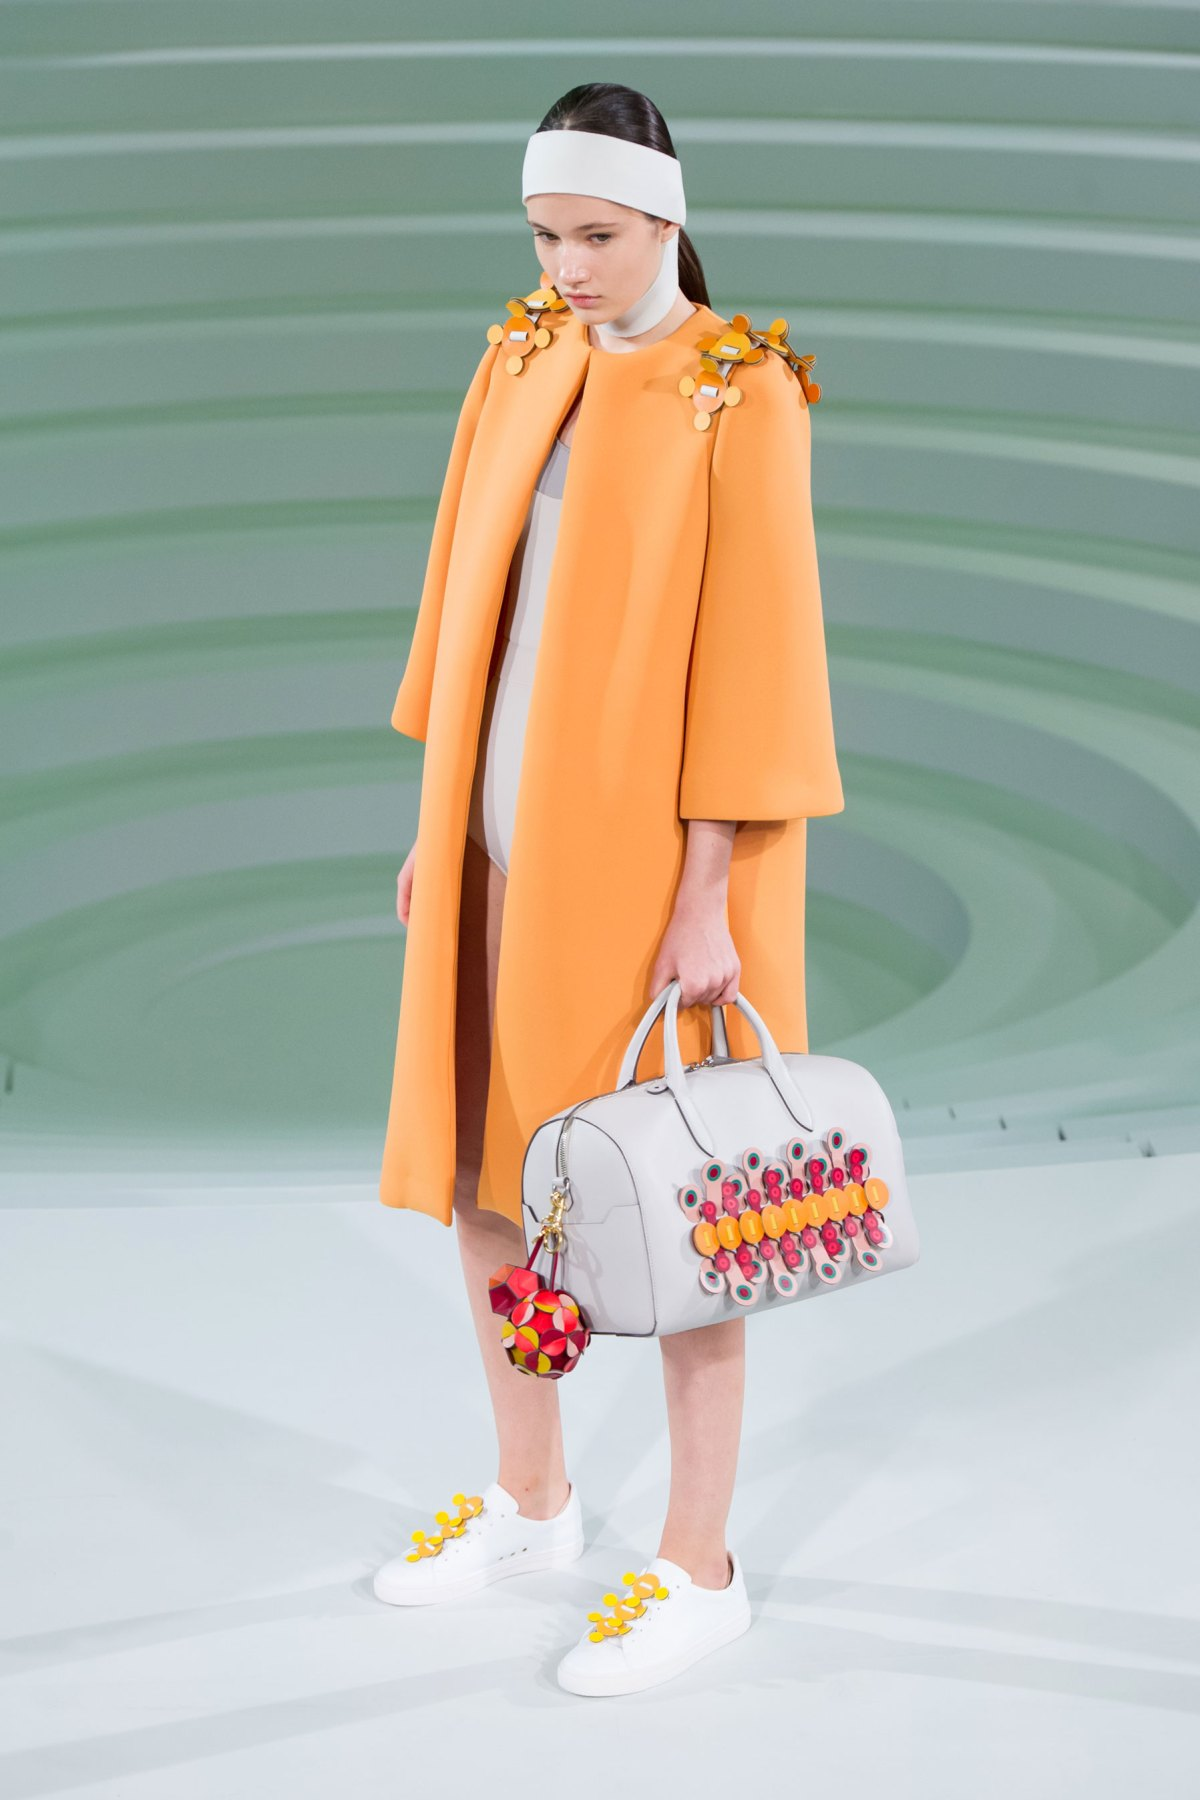 Hindmarch RS17 3306